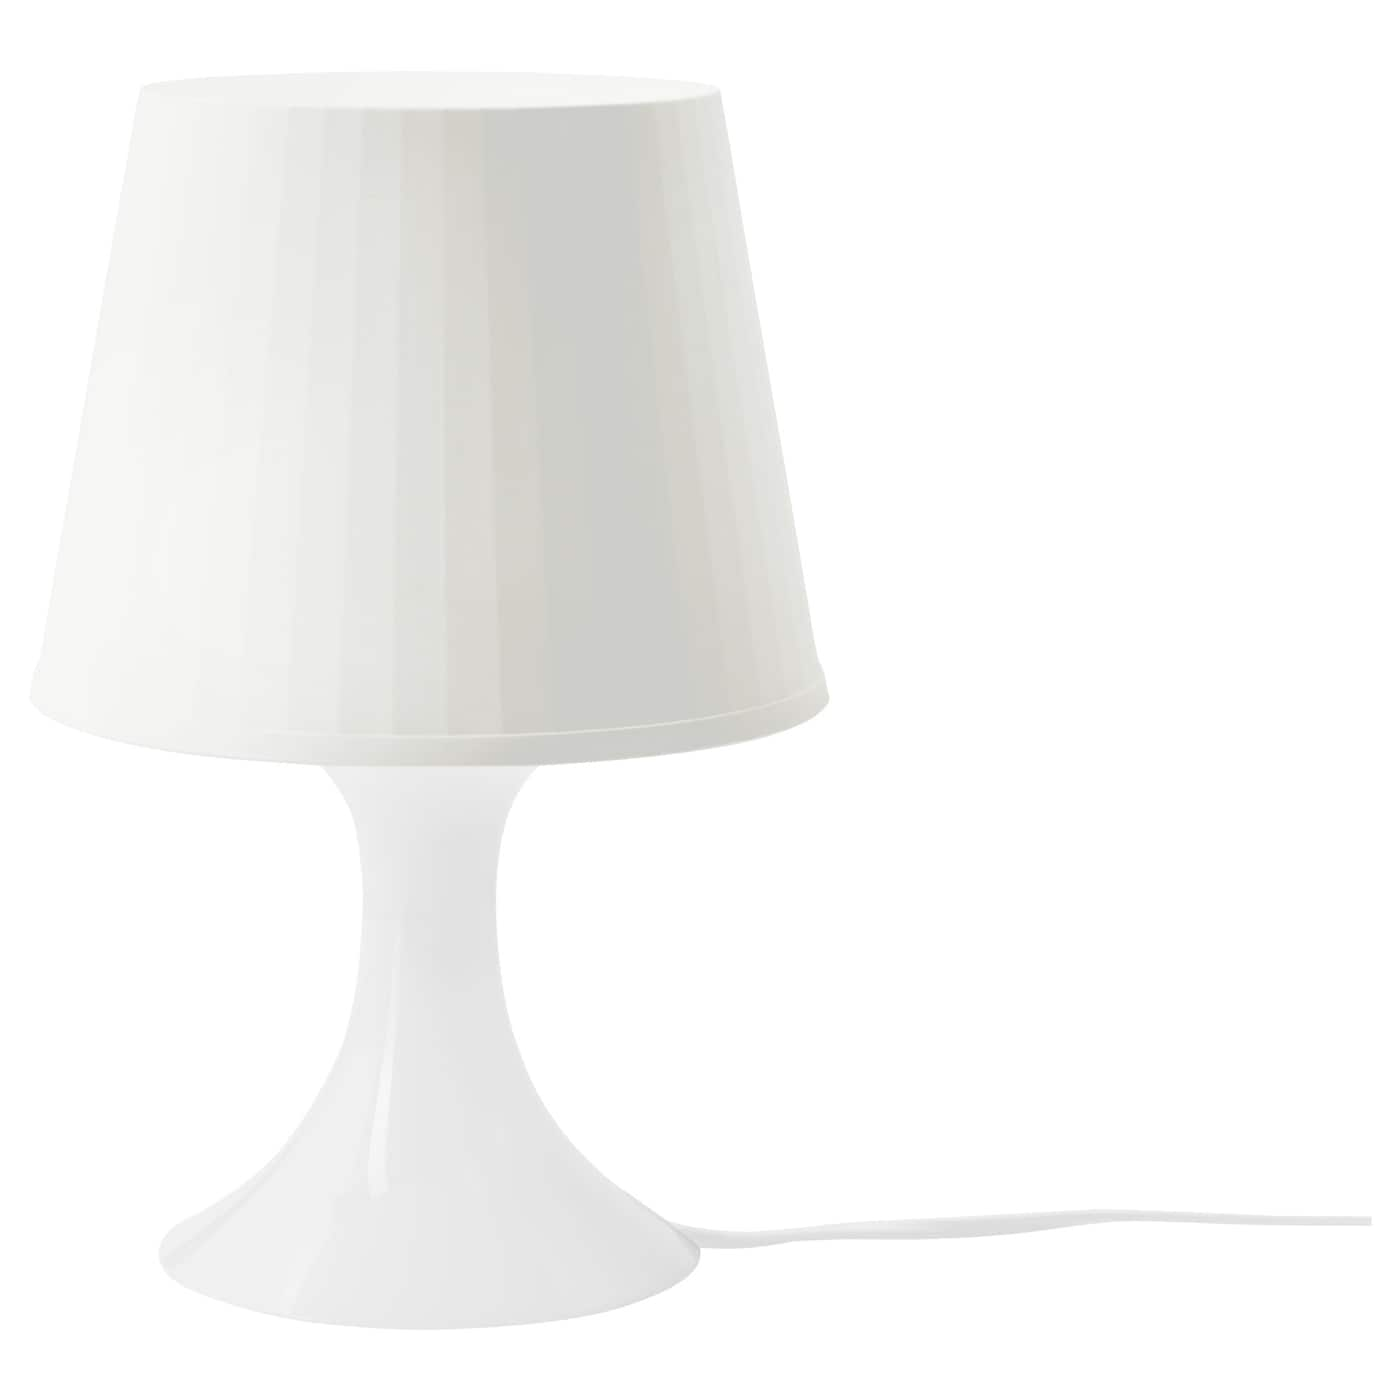 lampan table lamp white ikea. Black Bedroom Furniture Sets. Home Design Ideas